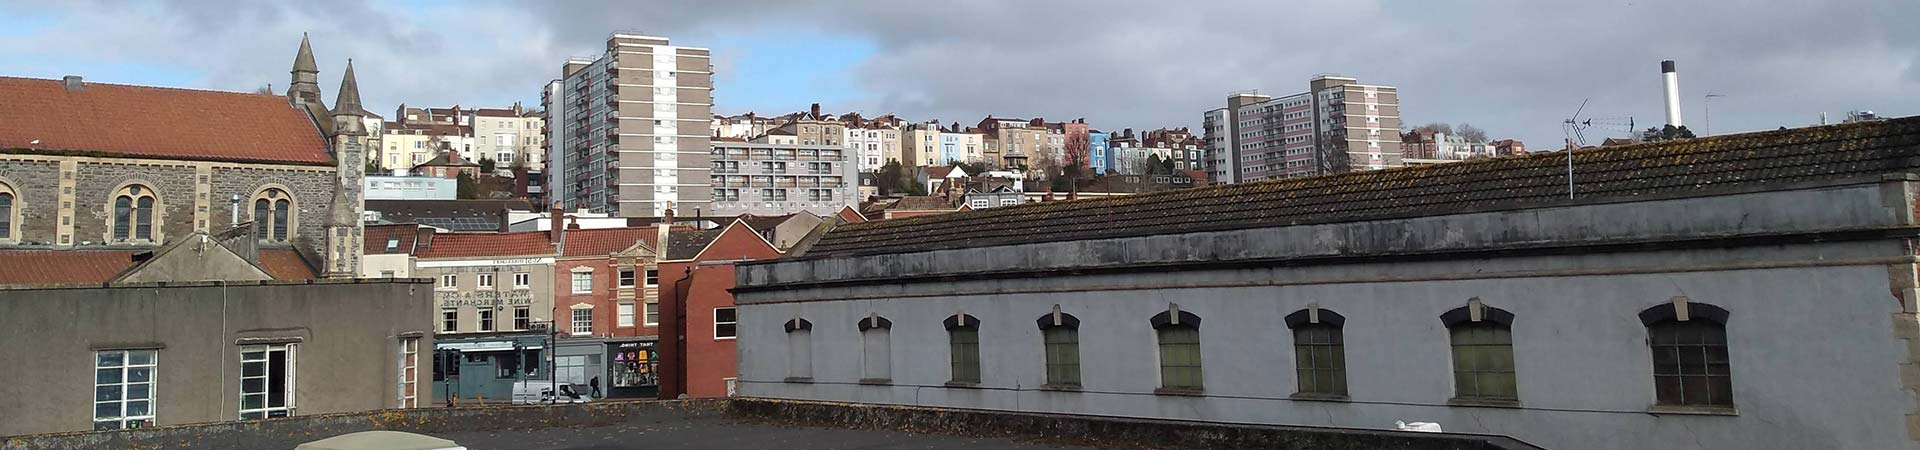 Homes on the roof